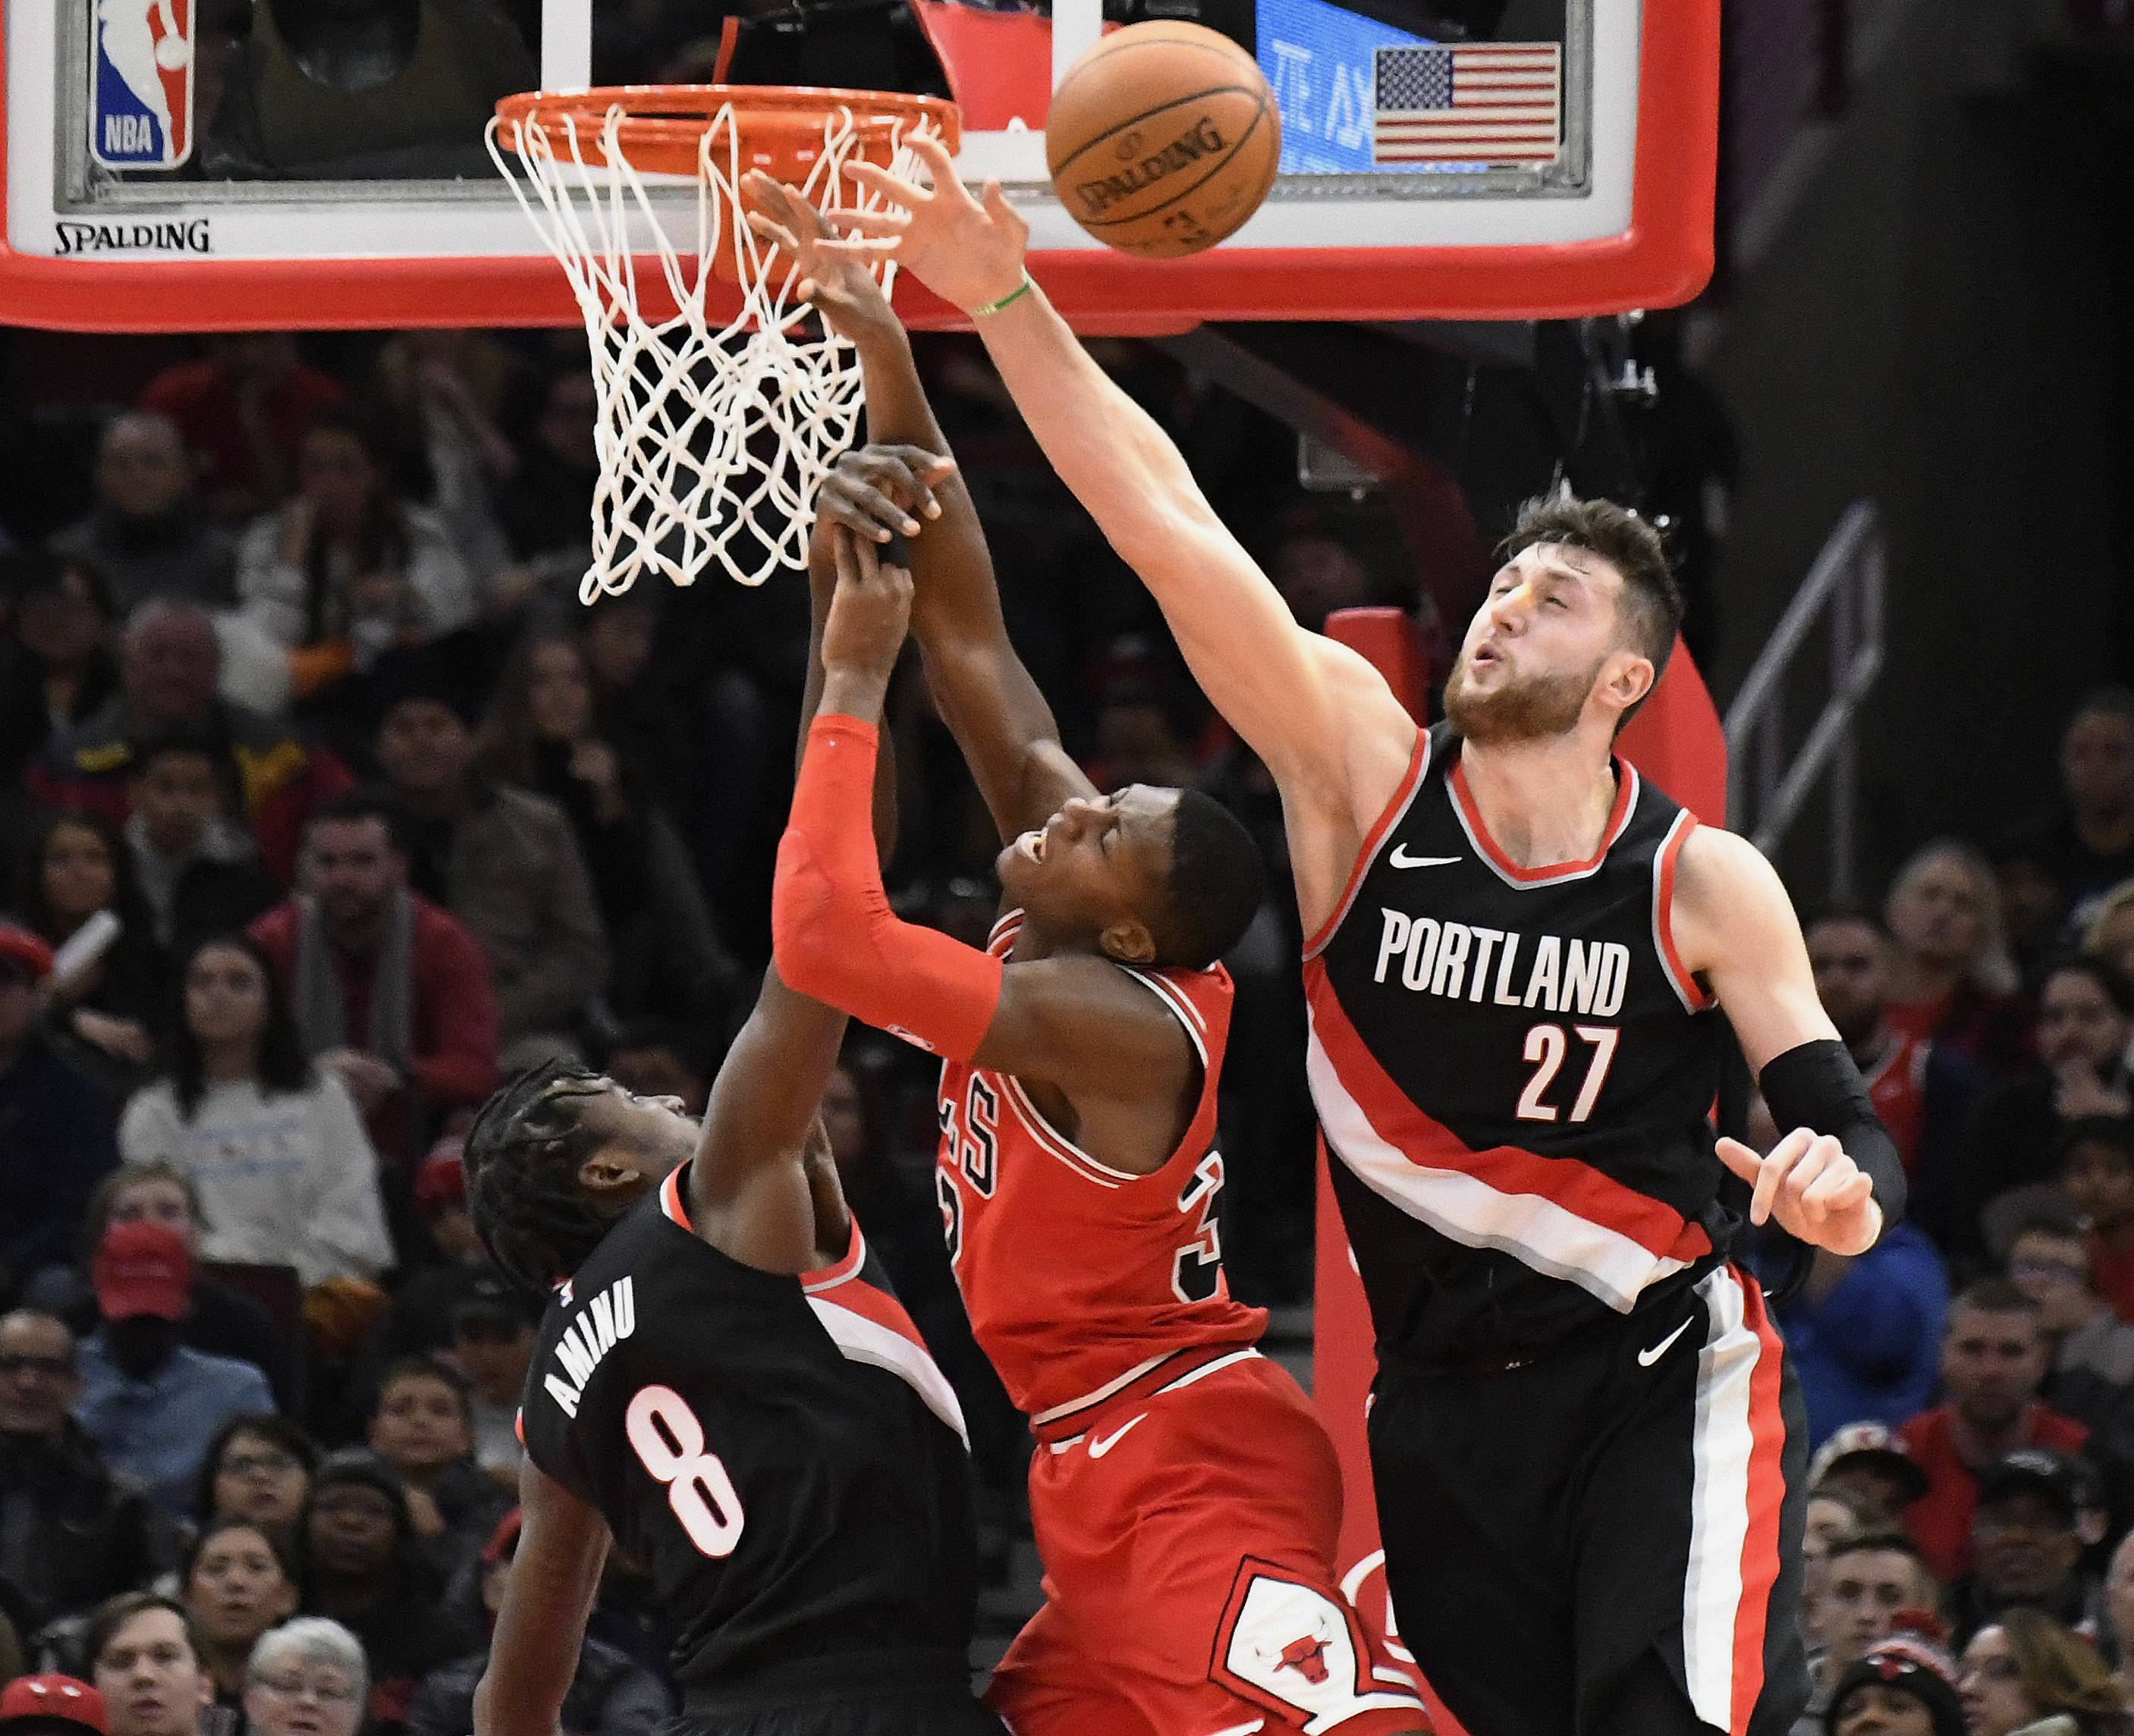 Portland Trail Blazers center Jusuf Nurkic (27) forward Al-Farouq Aminu (8) defend Chicago Bulls guard Kris Dunn, center, during the second half of an NBA basketball game, Monday, Jan. 1, 2018, in Chicago. The Trail Blazers won 124-120 in overtime.